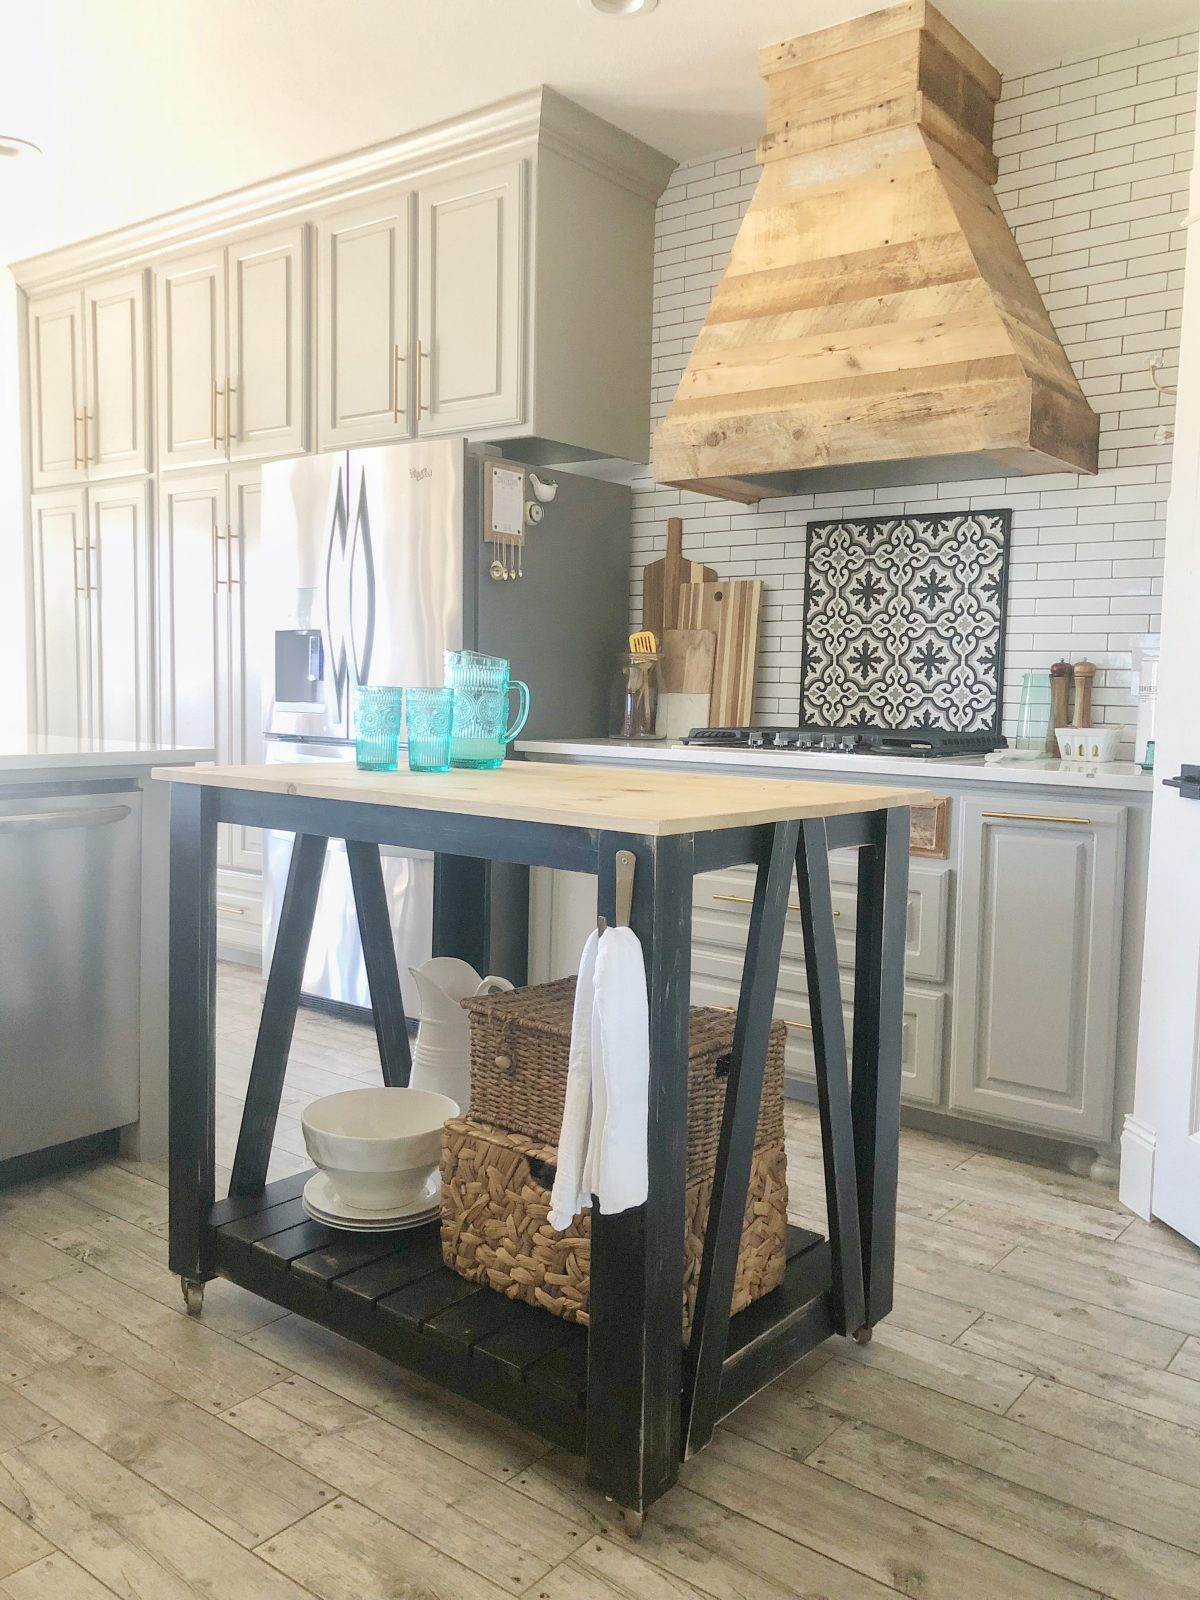 DIY Modern Farmhouse Kitchen Island Cart Shanty Chic - Farmhouse kitchen island for sale